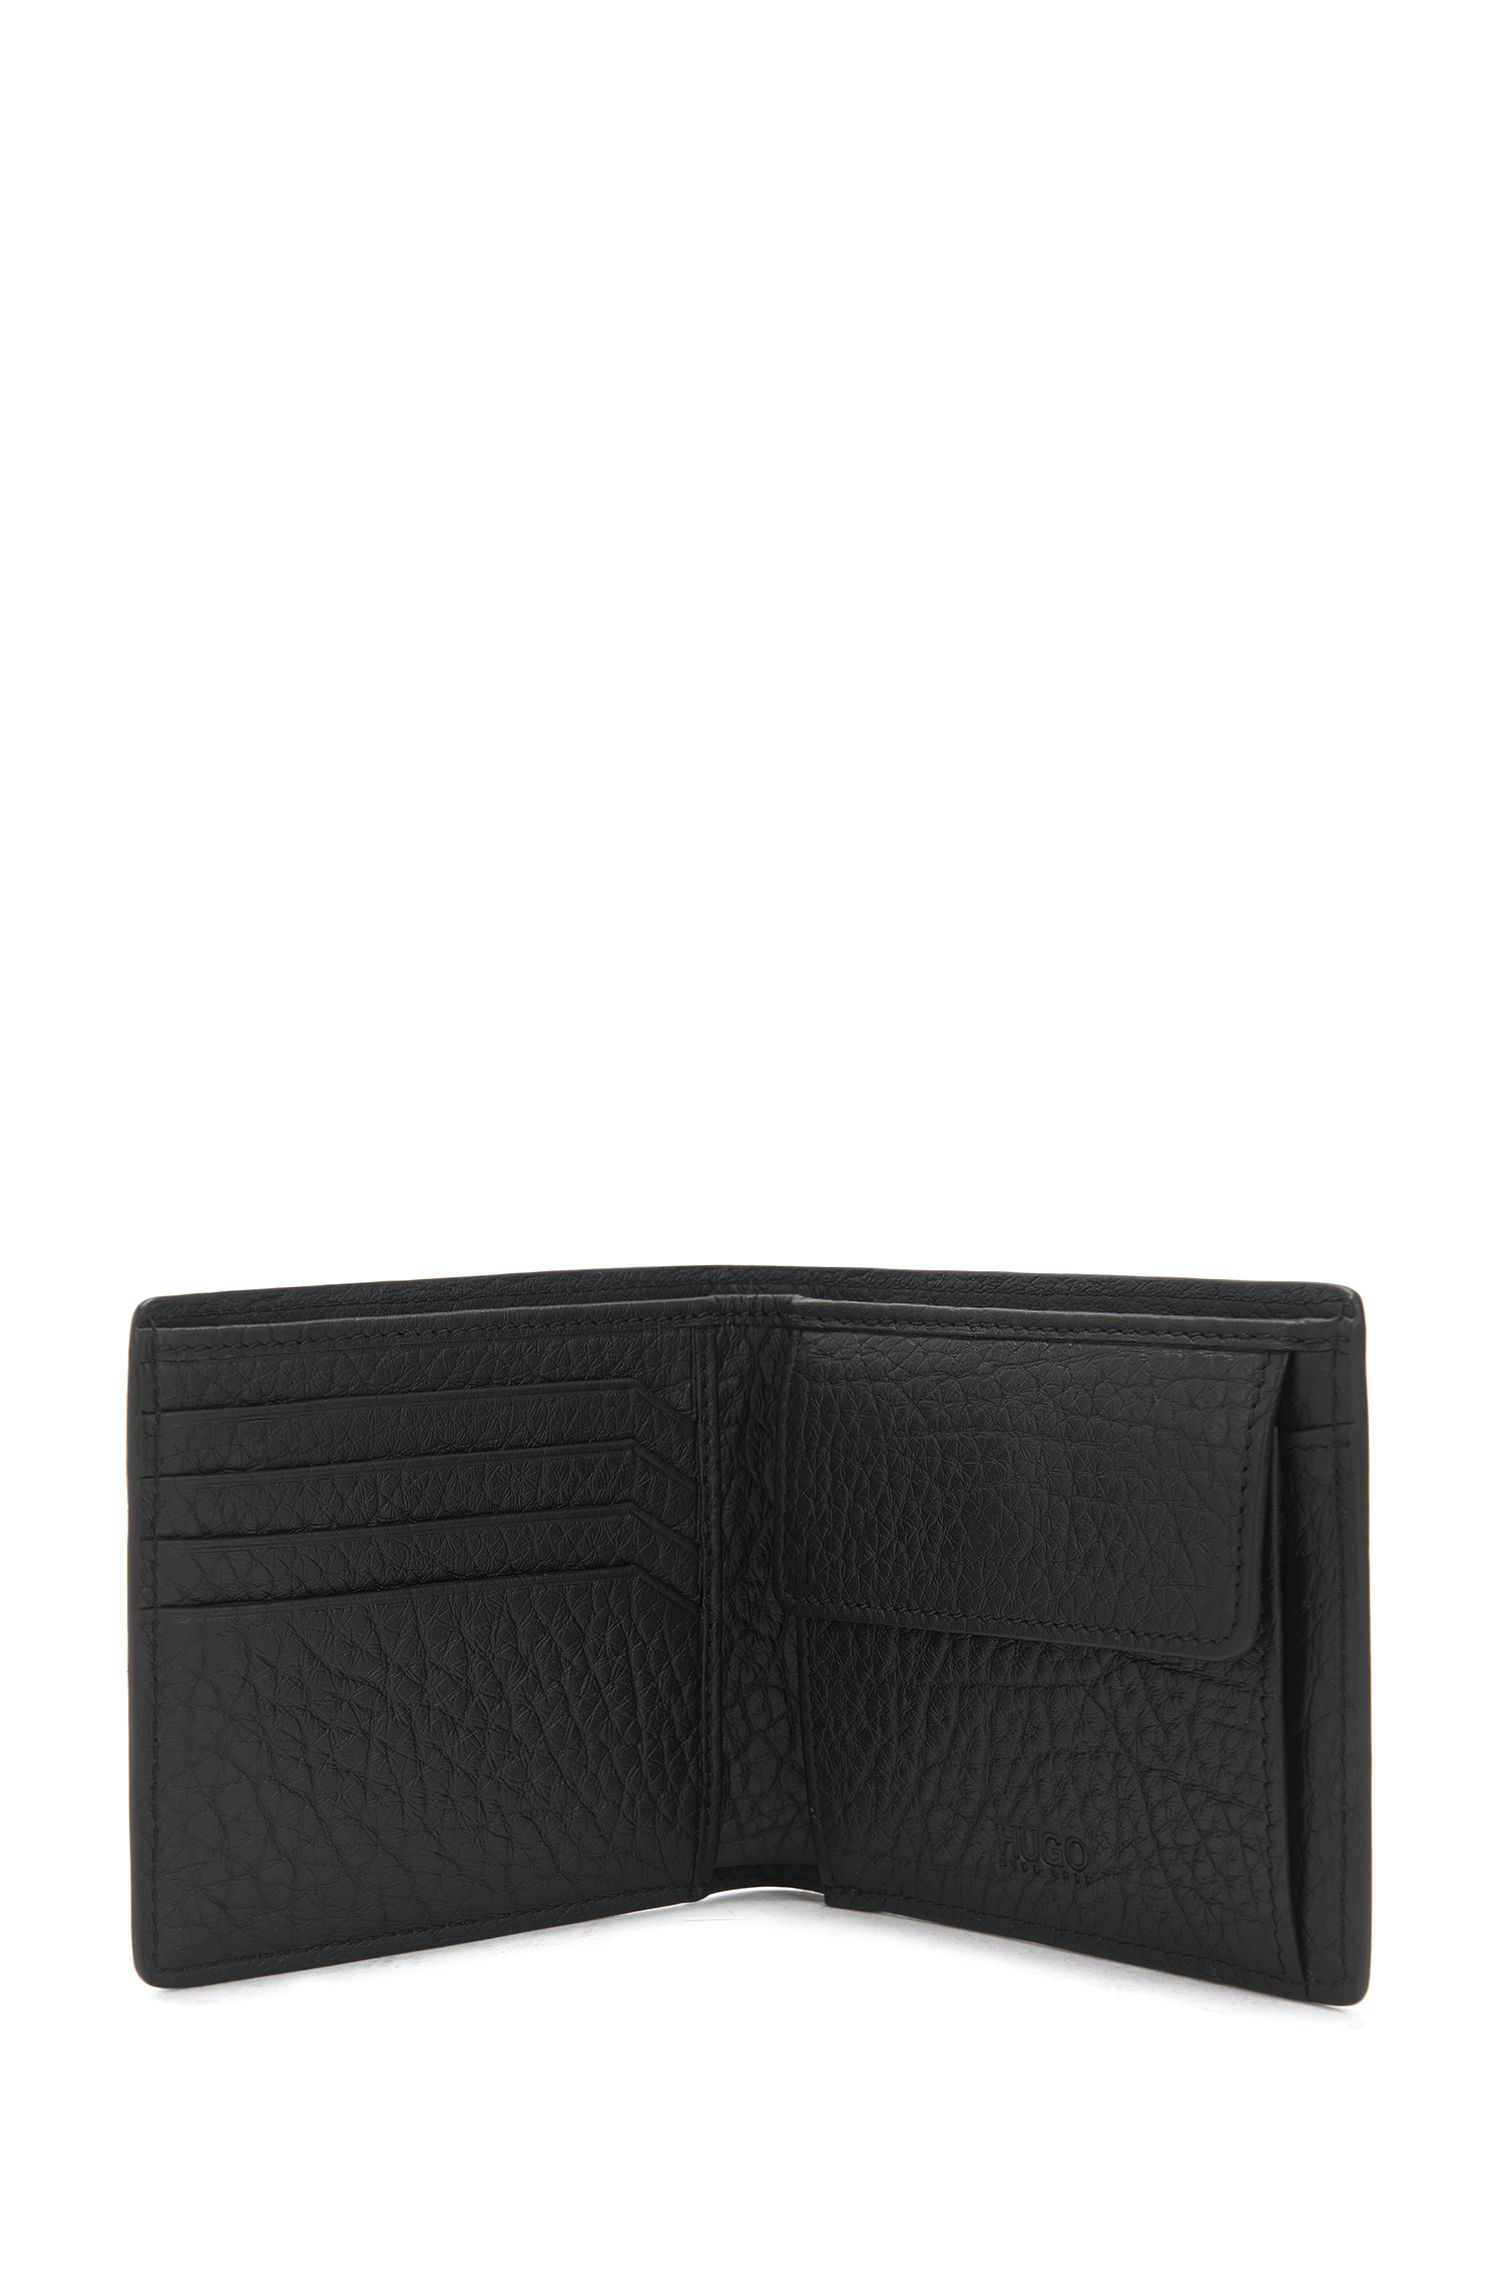 Embossed Leather Billfold Wallet | Victorian, Black